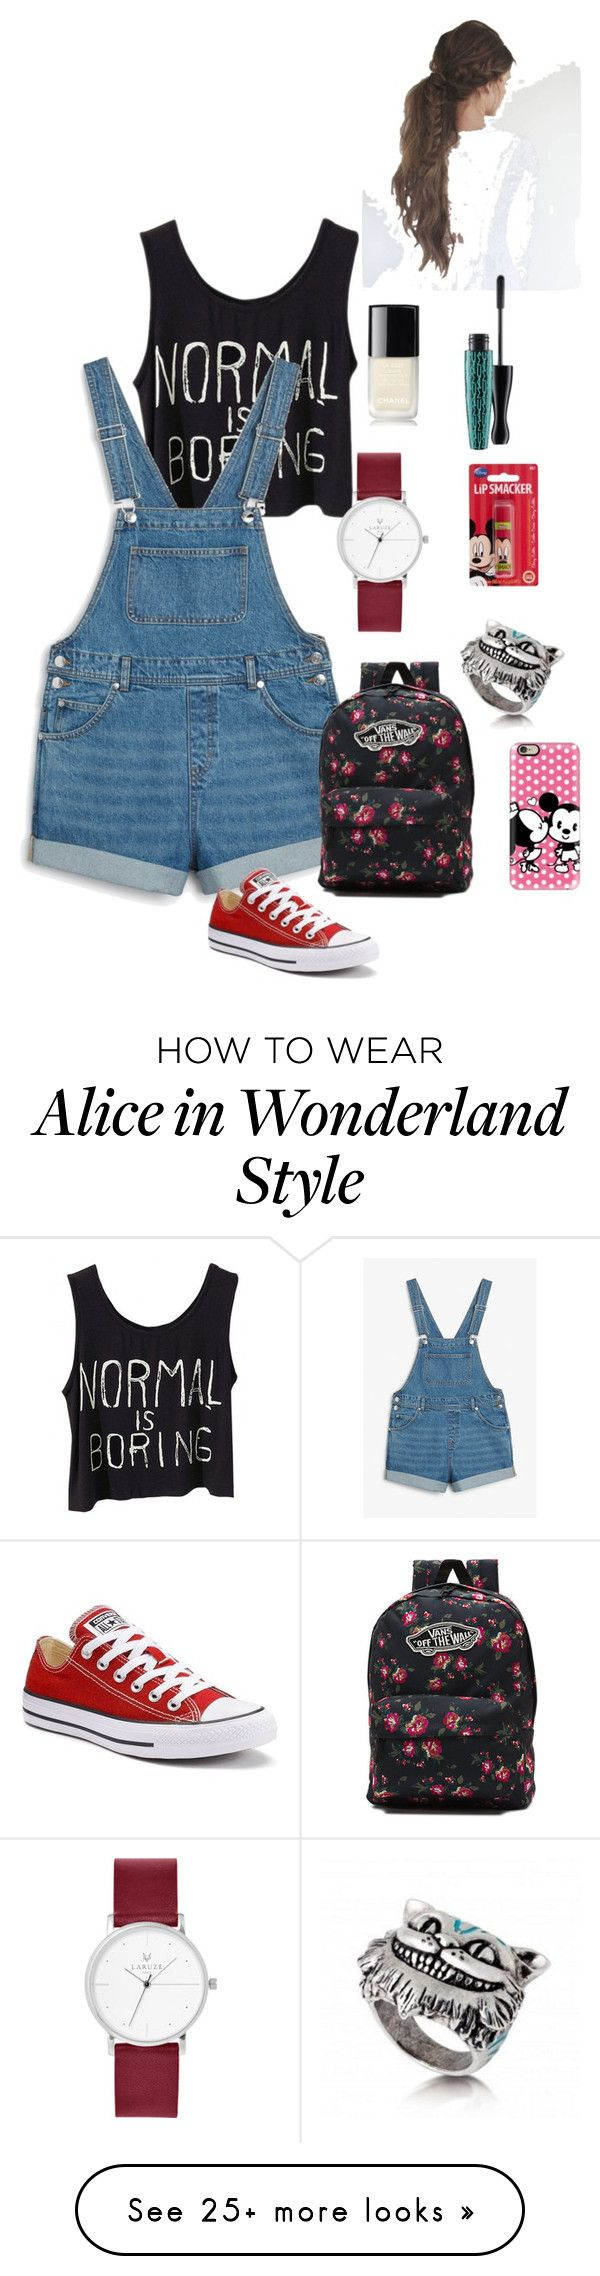 """Disney"" by anaelle7 on Polyvore featuring Monki, Casetify, Vans, Converse, Disney, Chanel and MAC Cosmetics"